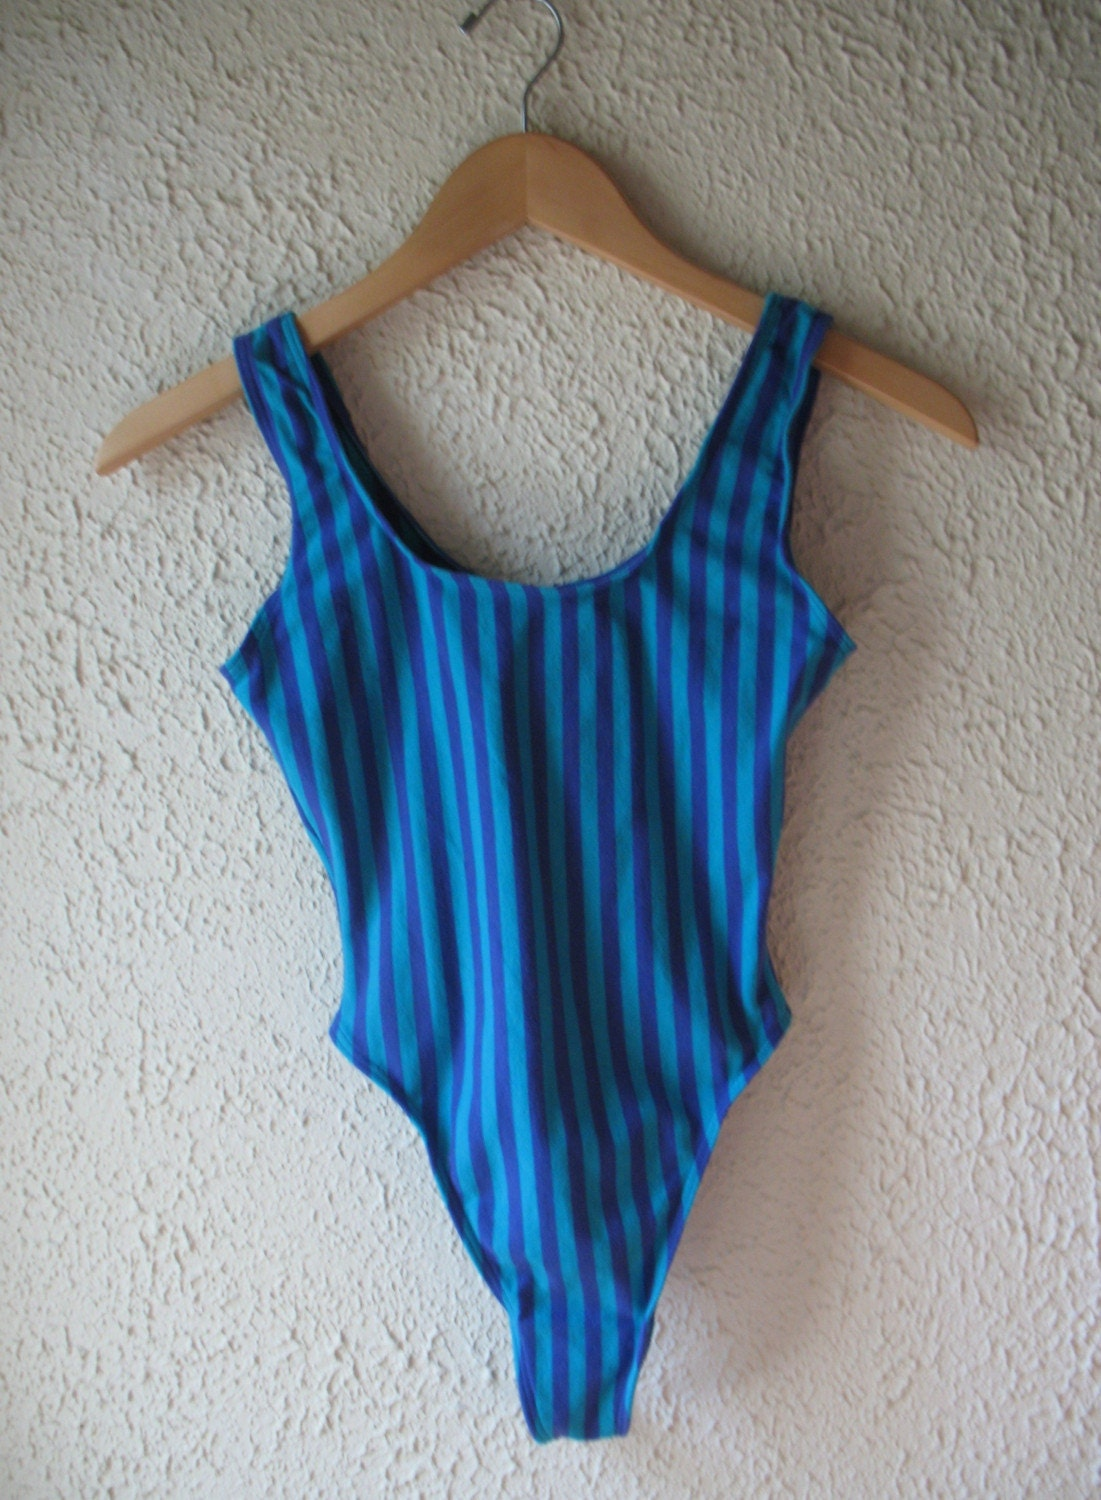 Let Me Hear Your Body Talk Vintage 80s Striped Cotton Blend Thong Leotard by Jazzercise sz m